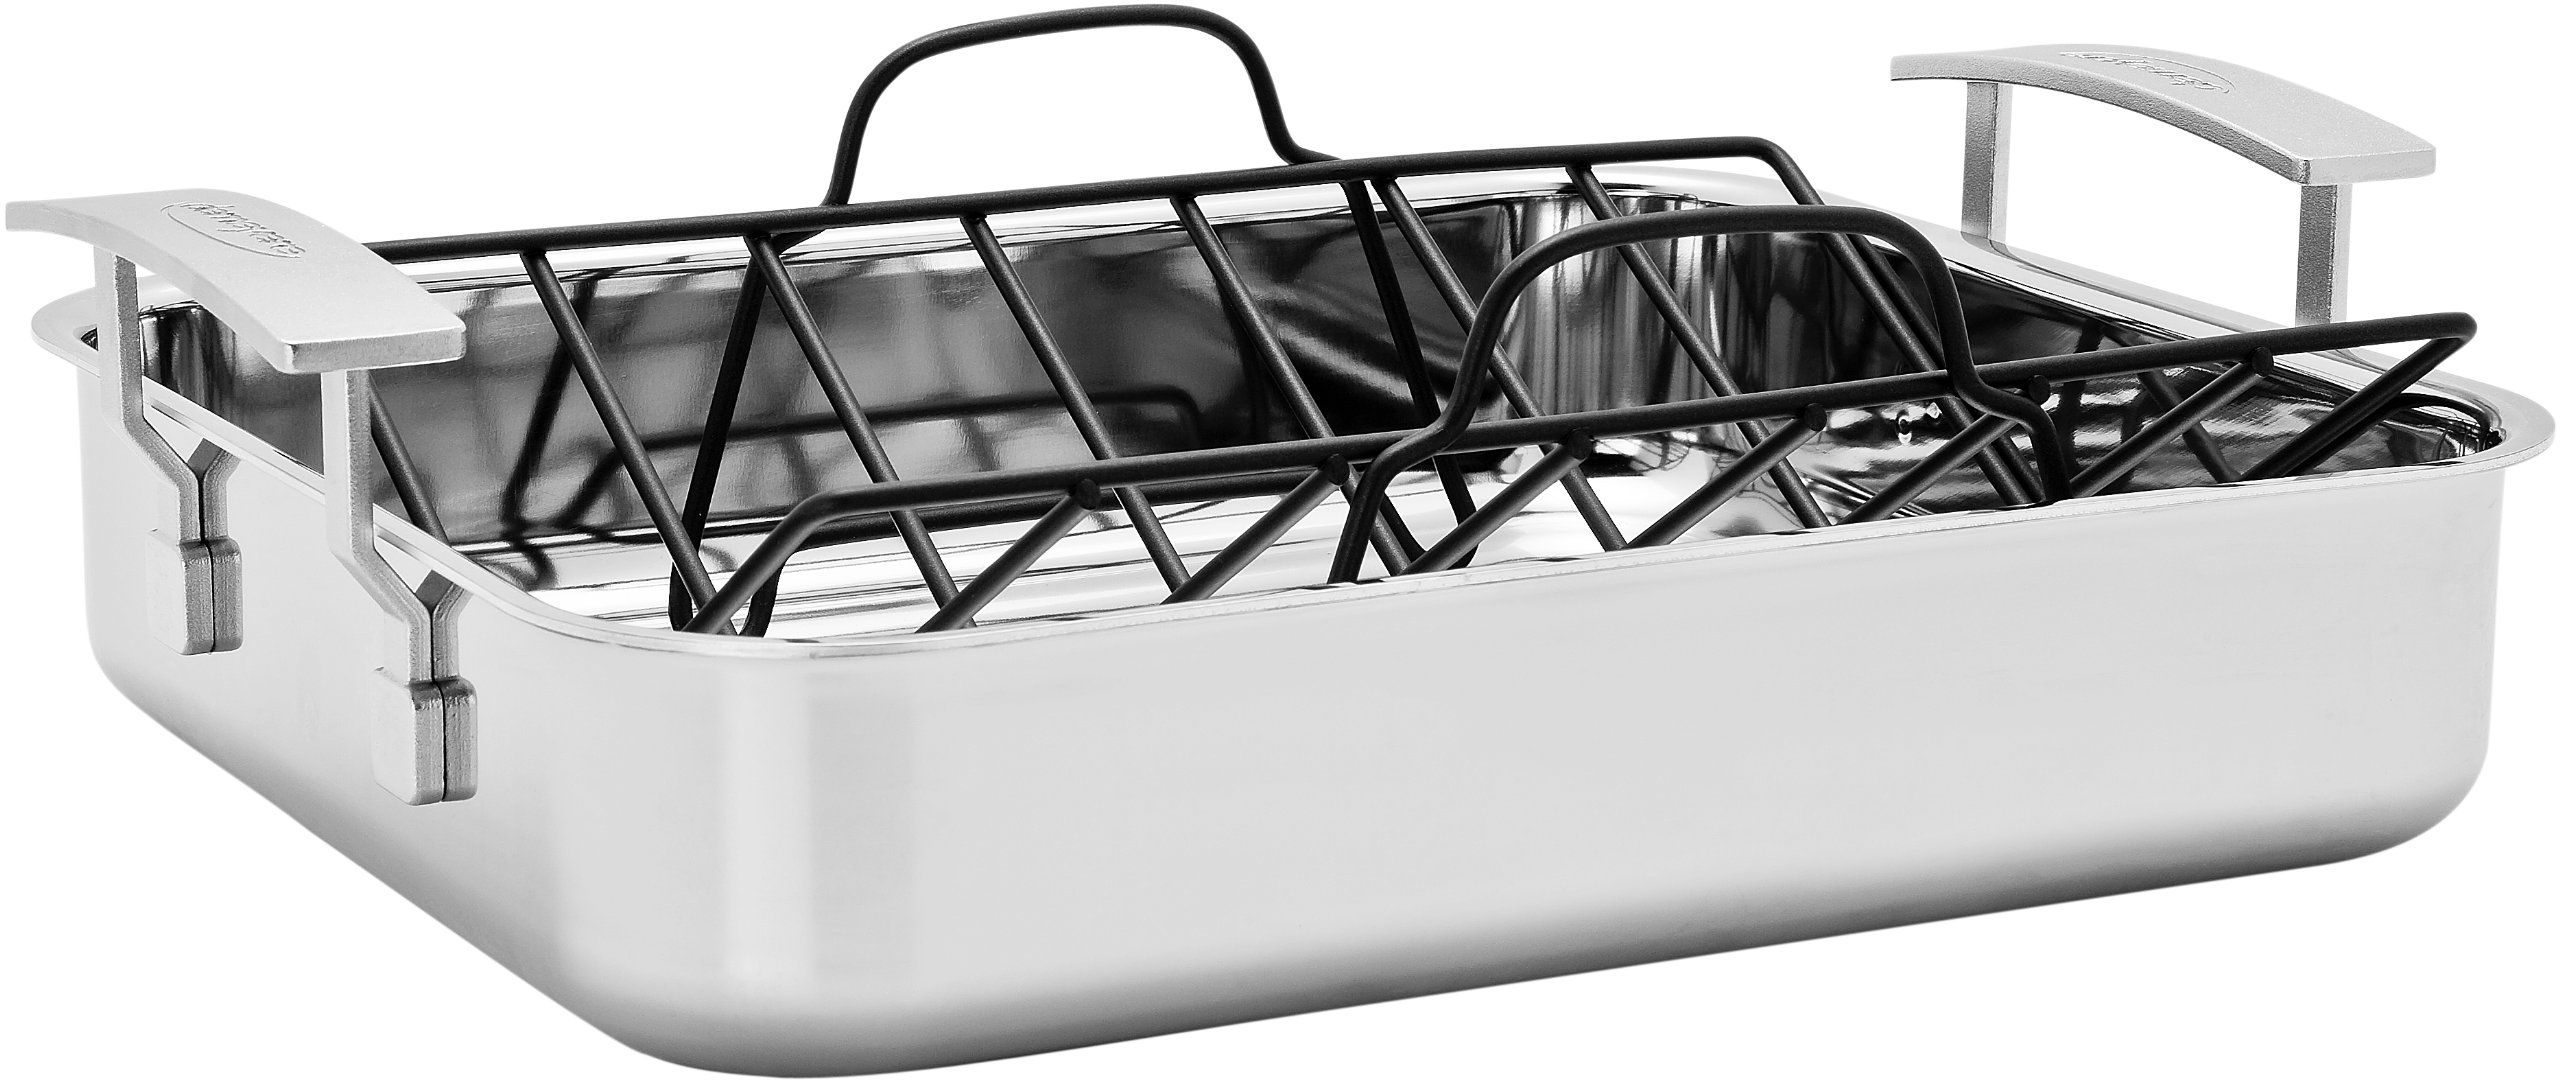 Demeyere Industry 40850-688-0 Roasting Tray with Roasting Rack by Demeyere